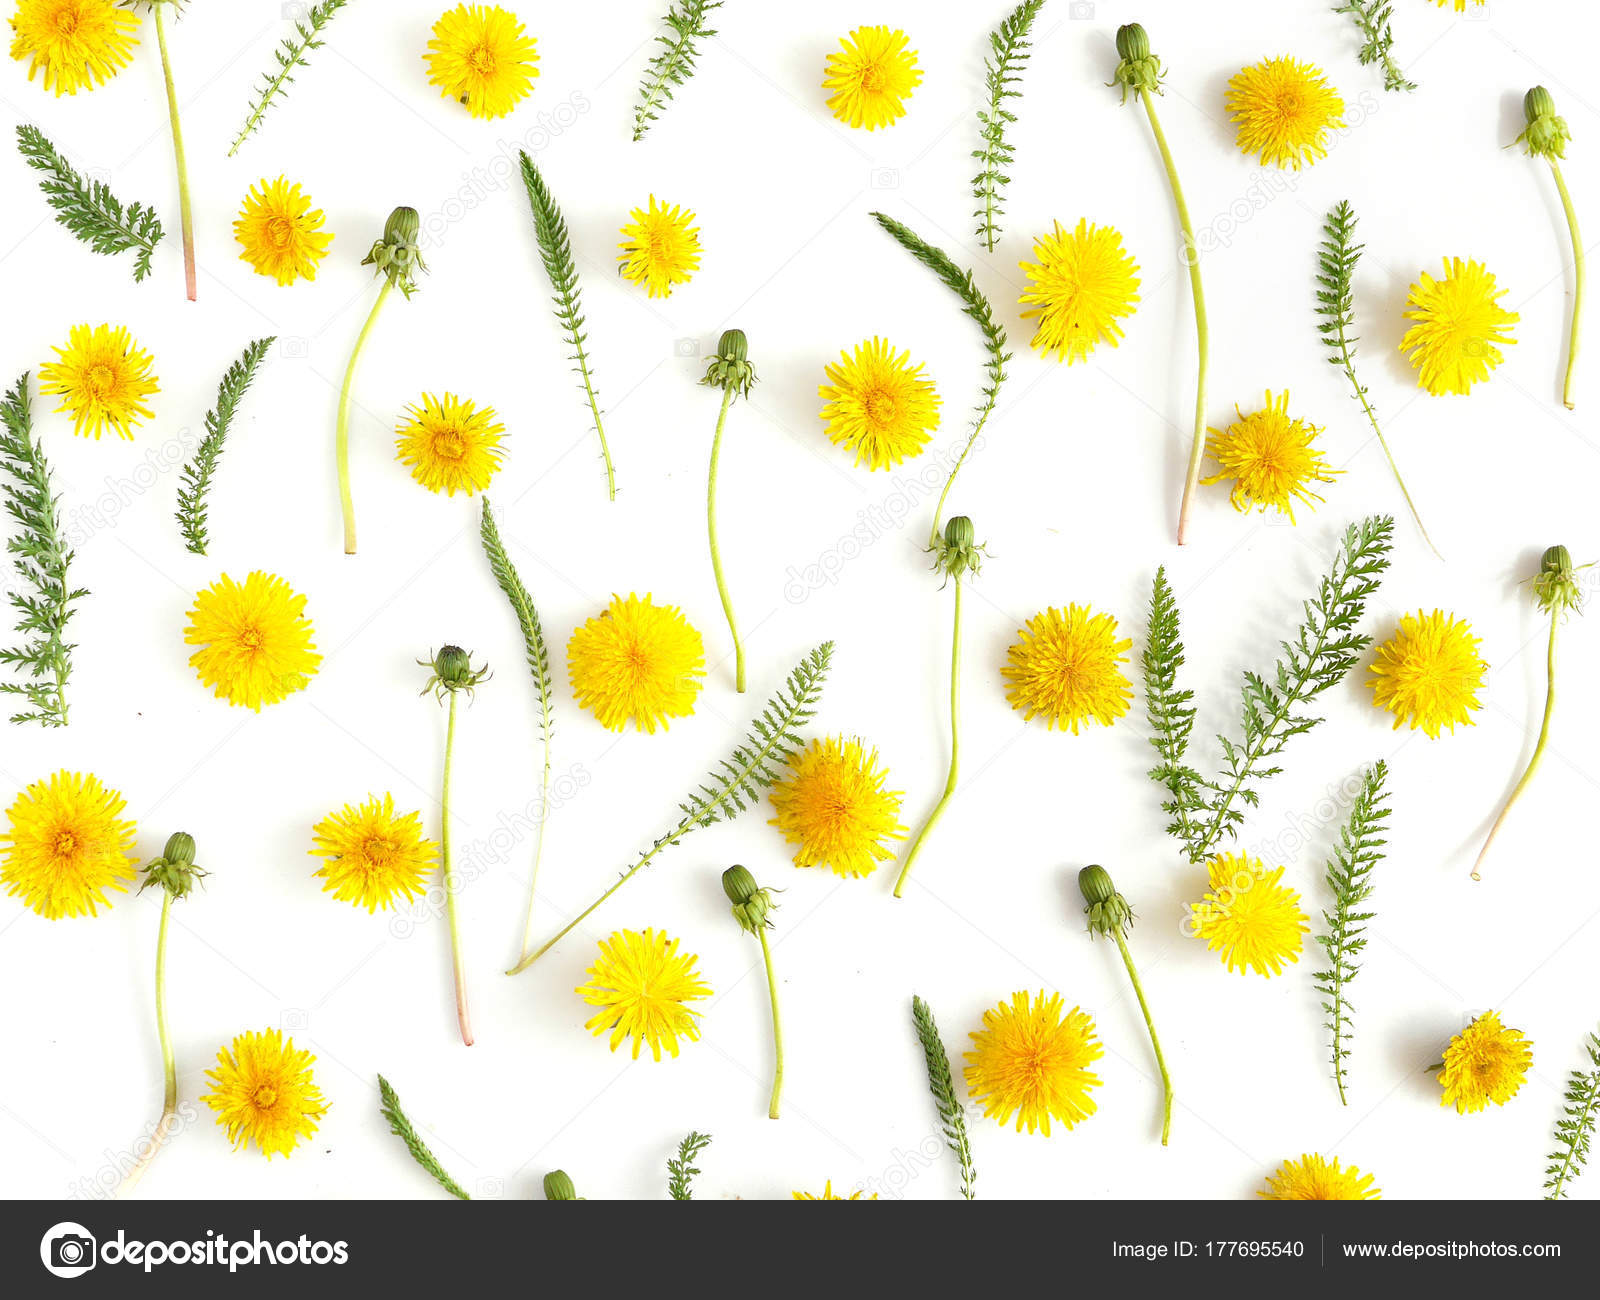 Botanical Composition Yellow Flowers Green Leaves Isolated White